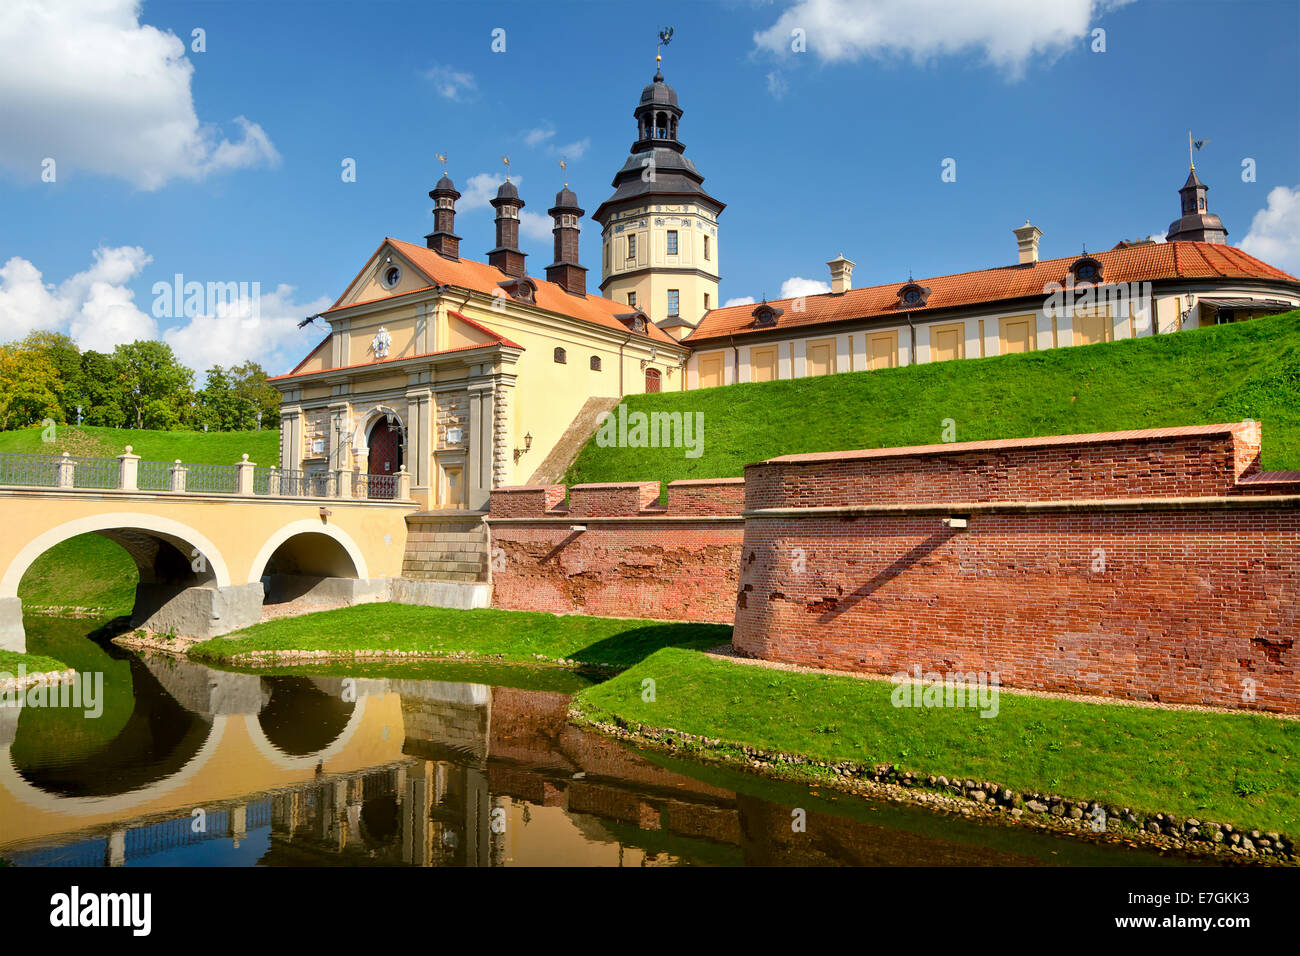 View of medieval castle near Nesvizh town of Belarus Republic - Stock Image